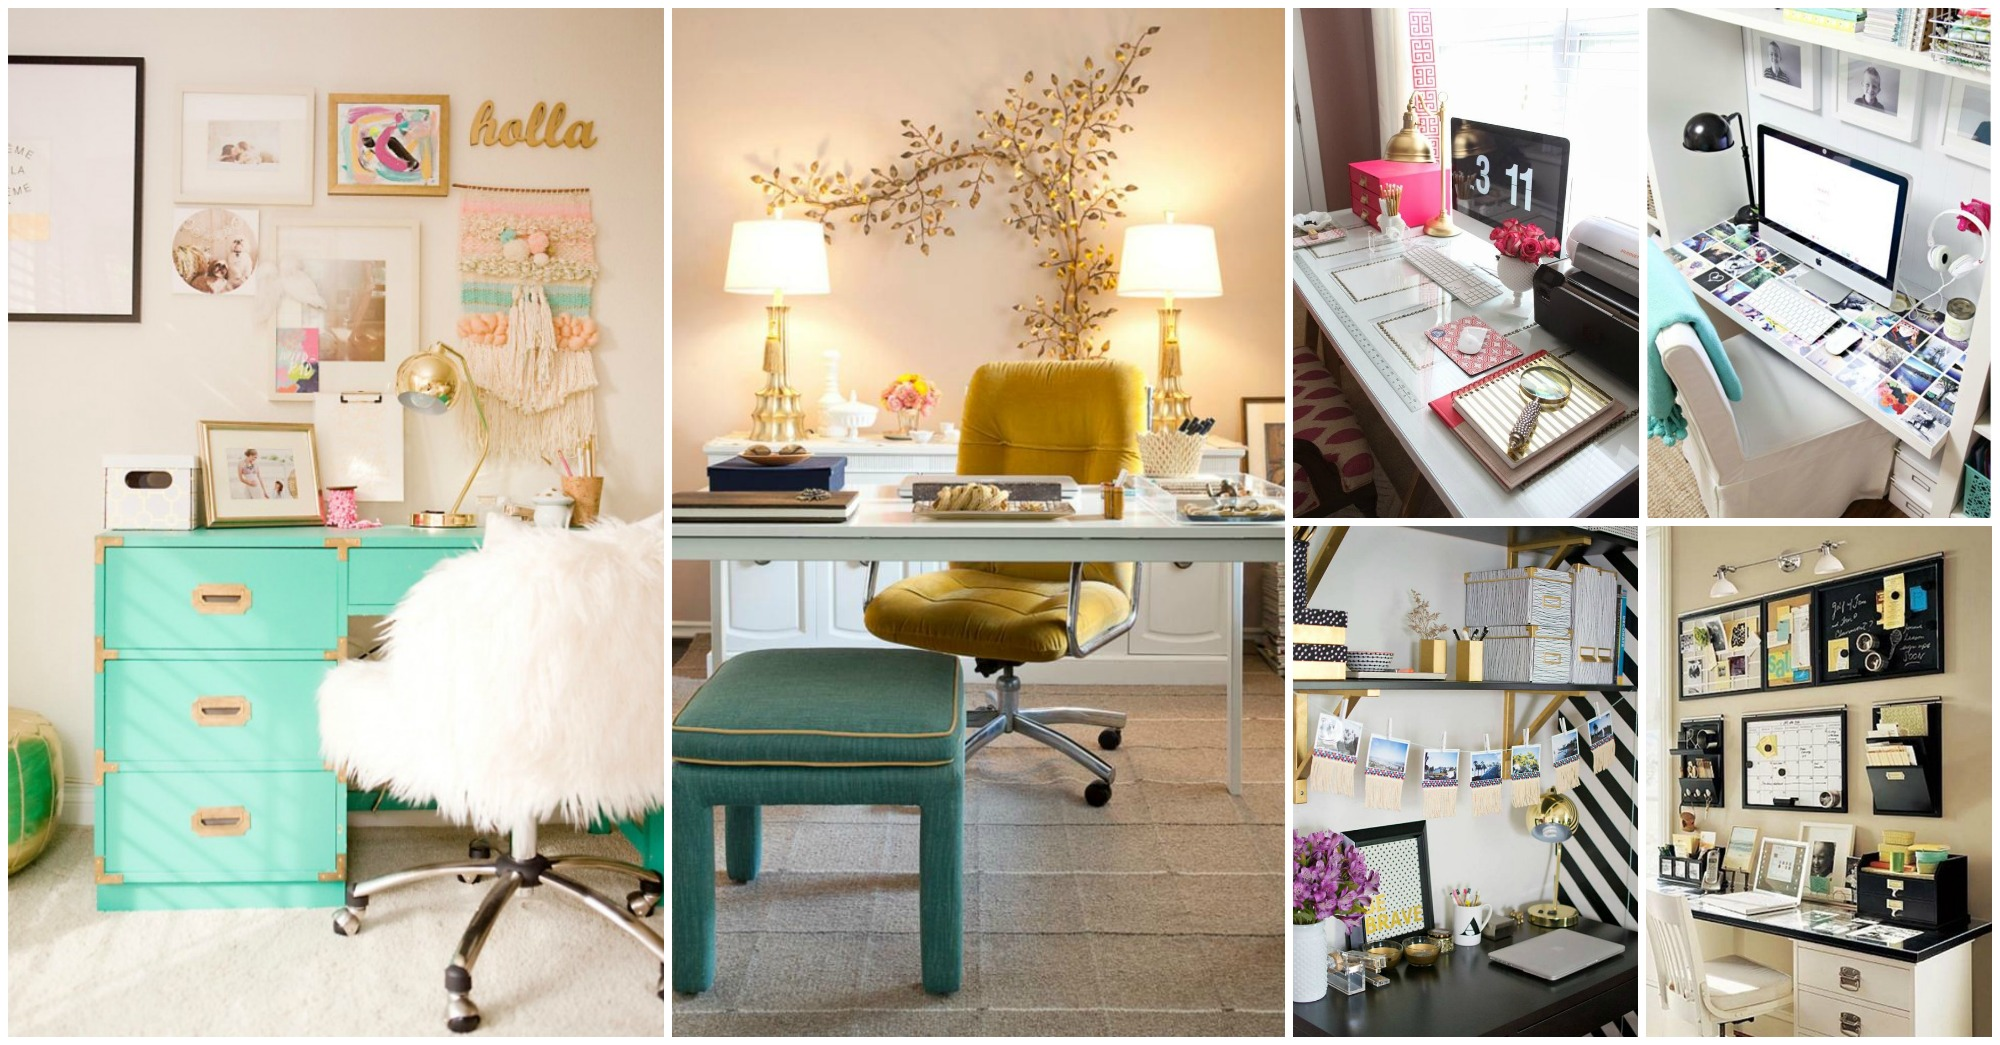 home office decor ideas amazing home office decorating ideas decor inspiration furniture layout OOUHCXF